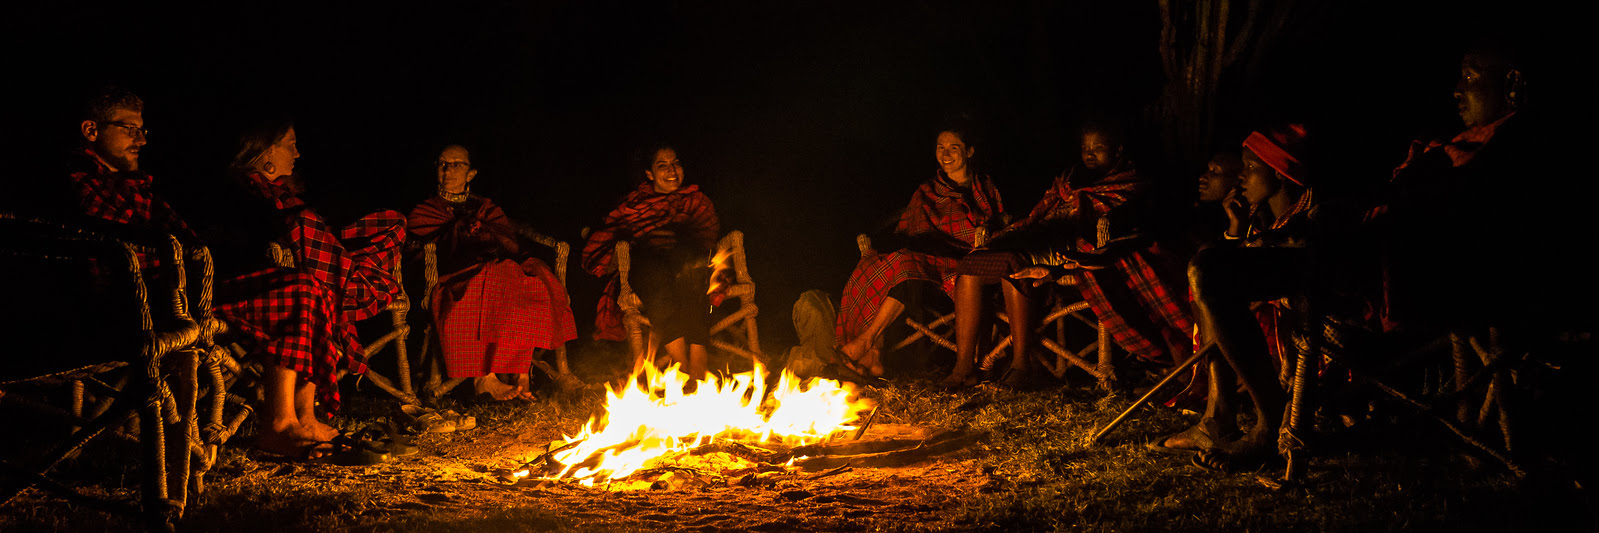 campfire songs with the Maasai